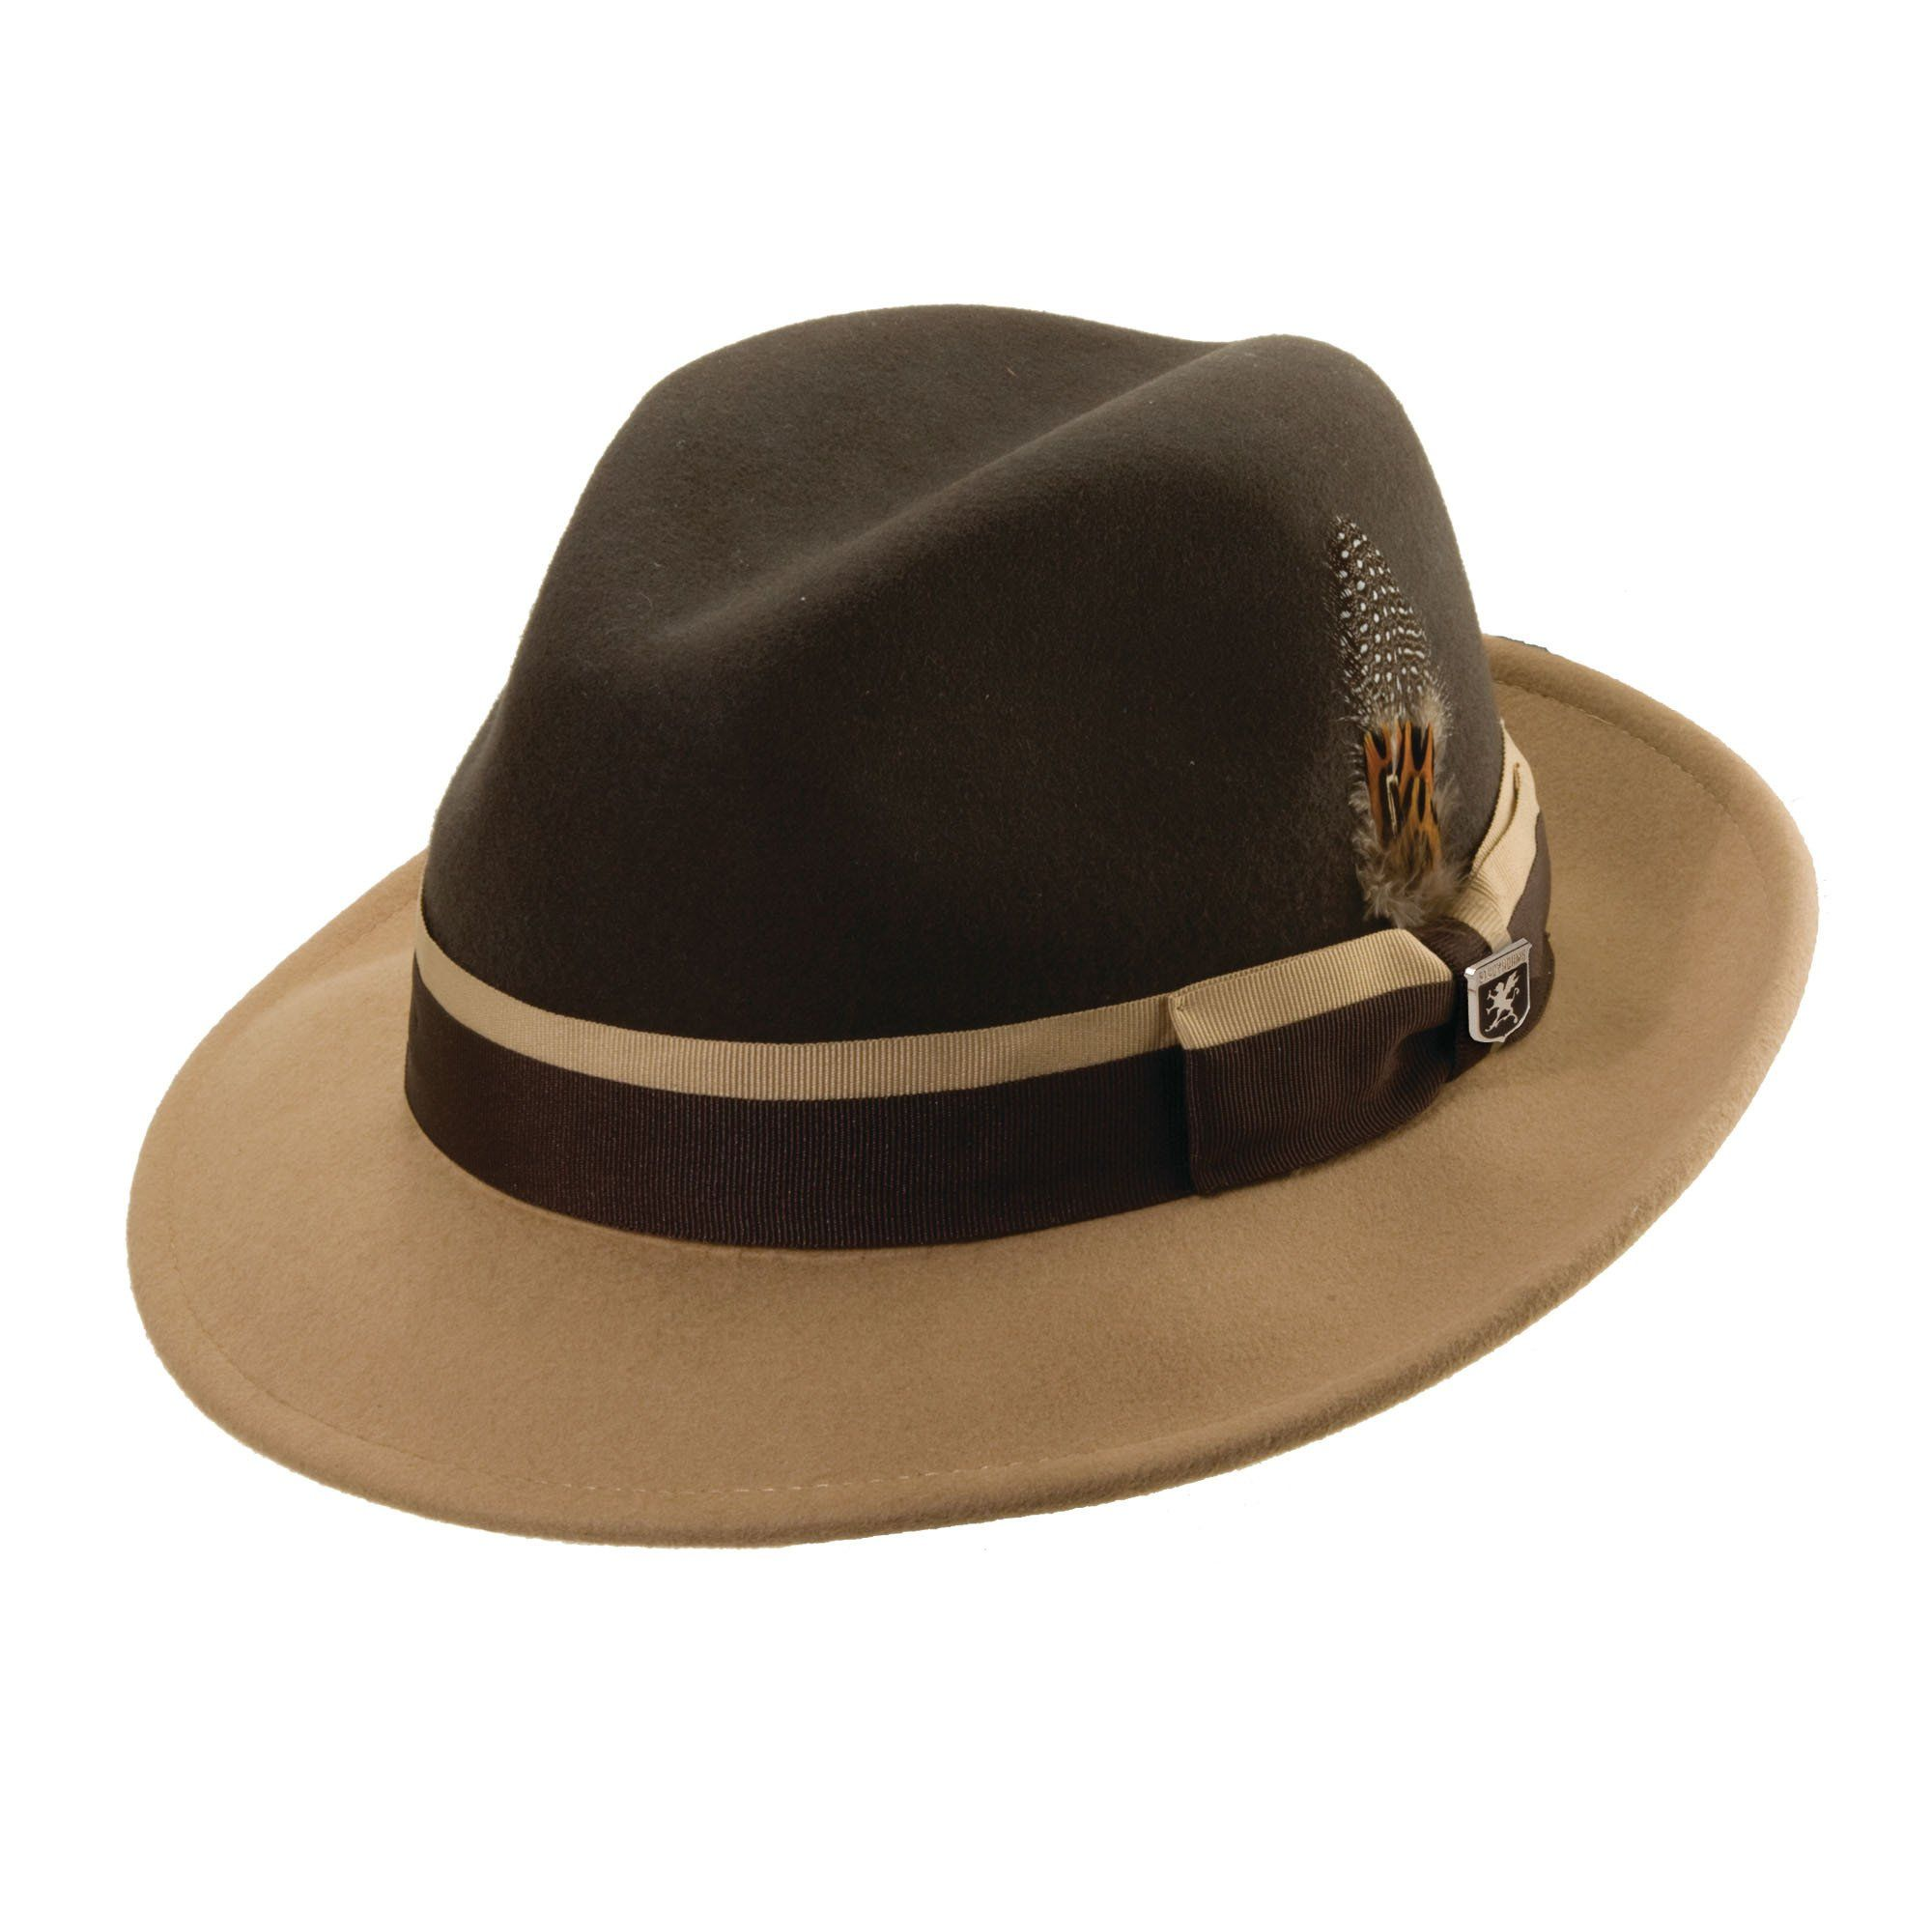 aff3e103c Stacy Adams Two Tone Fedora in 2019 | Products | Hats, Tan hat, Mens ...